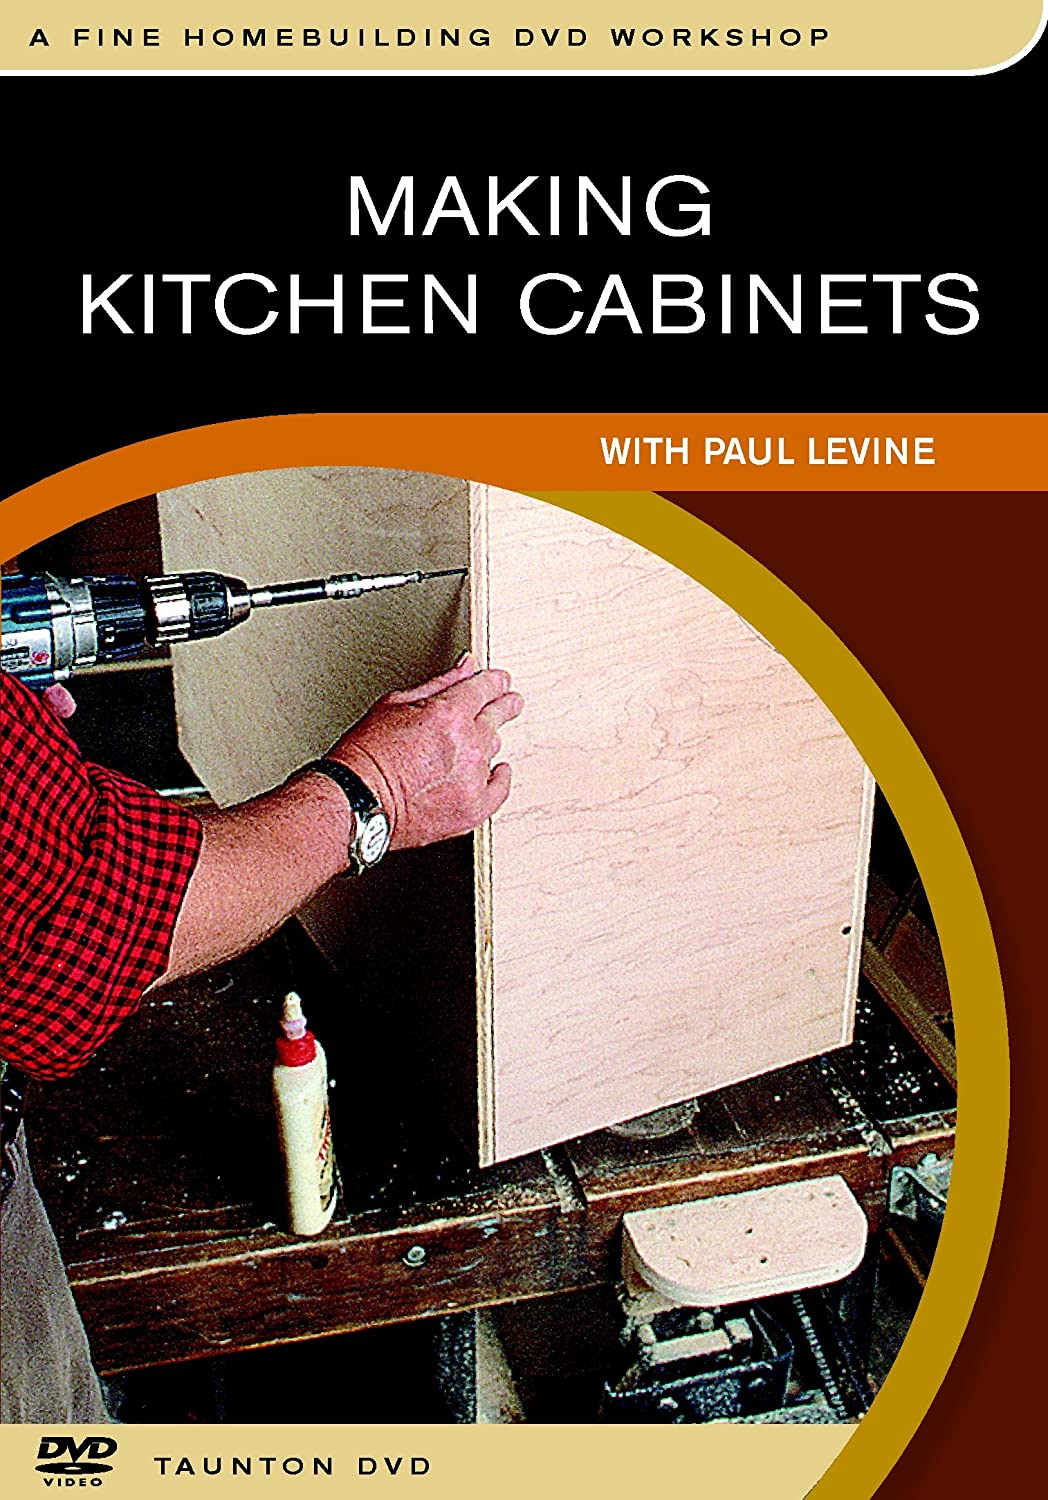 Amazon.com: Making Kitchen Cabinets: A Foolproof System for ... on kitchen cabinet drawing plans, homemade open shelf cabinet, basic cabinet plans, homemade kitchen cabinate door plans, simple kitchen cabinet plans, homemade kitchen cabinets ideas, mission wood cabinet plans, build your own kitchen cabinet plans, homemade camp kitchen plans, diy kitchen island plans, kitchen cabinet construction plans, homemade kitchen cabinets how toos, kitchen hutch diy plans, kitchen cabinet woodworking plans, unusual corner kitchen cabinets plans, homemade china cabinets,